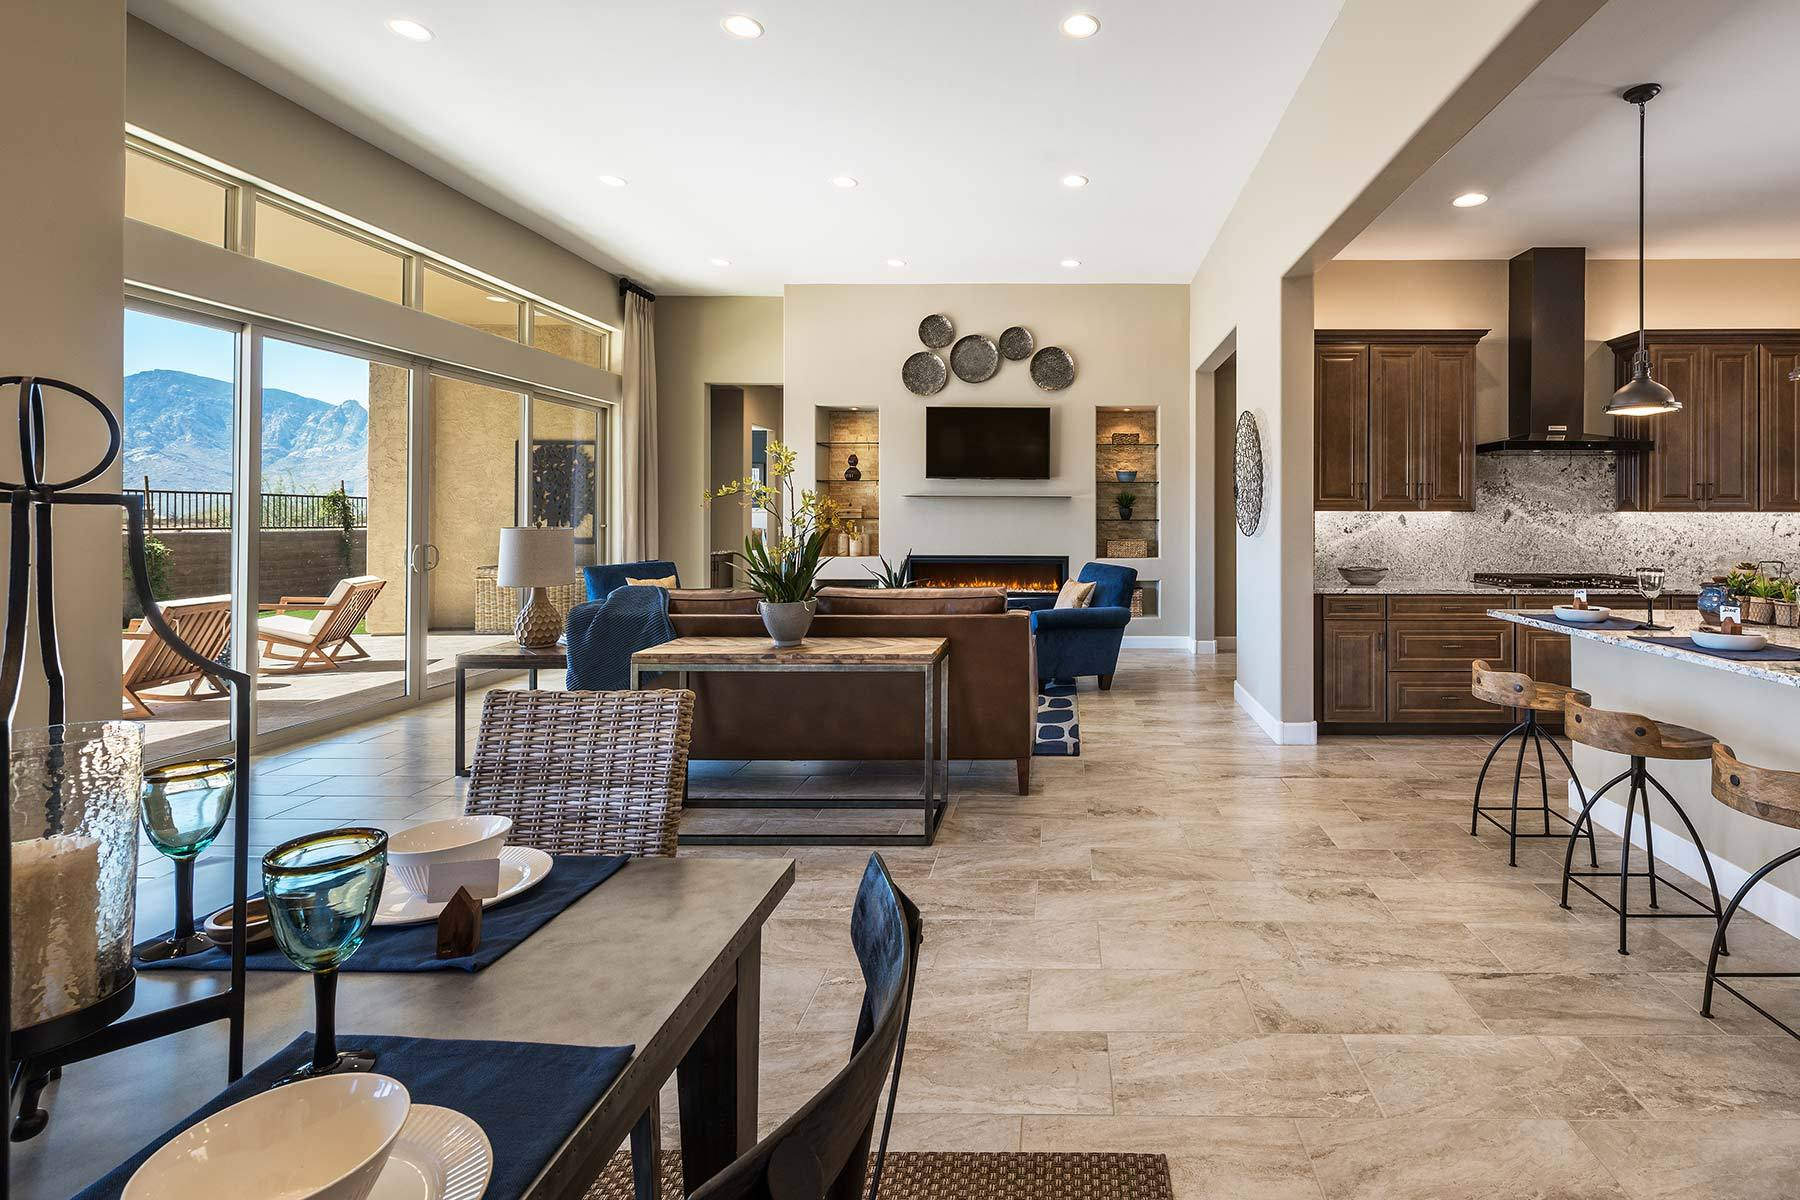 Living Area featured in the Terrain By Mattamy Homes in Tucson, AZ